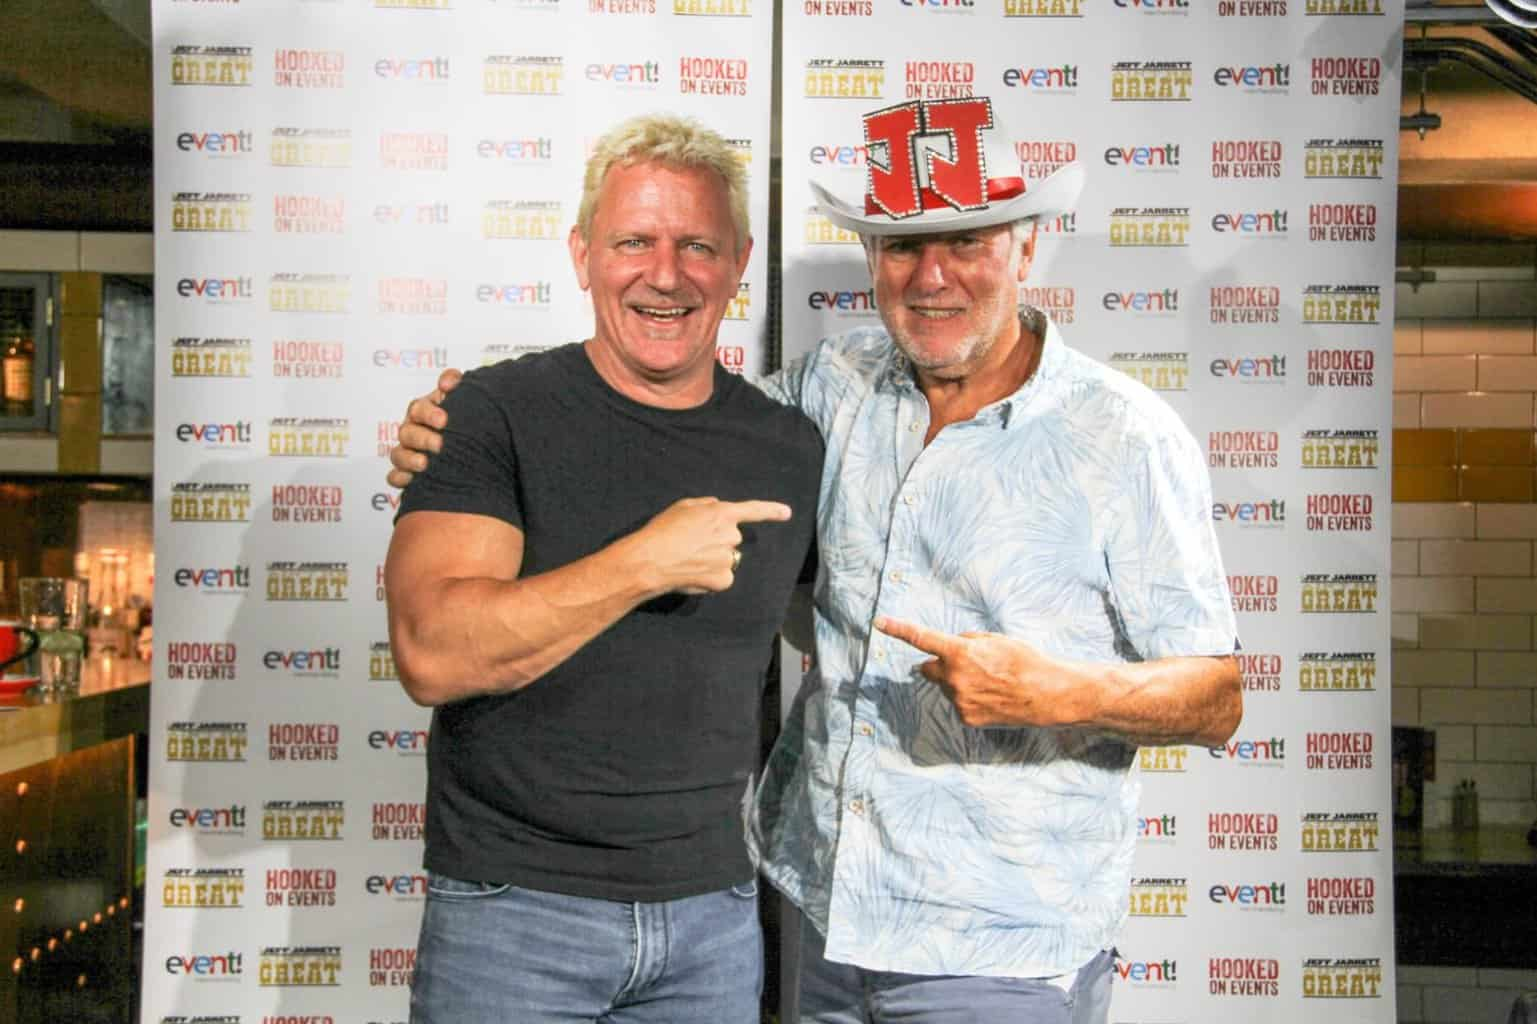 Martin Goldsmith – The Man Who Brought WWF Wrestling to the UK & SummerSlam '92 to Wembley